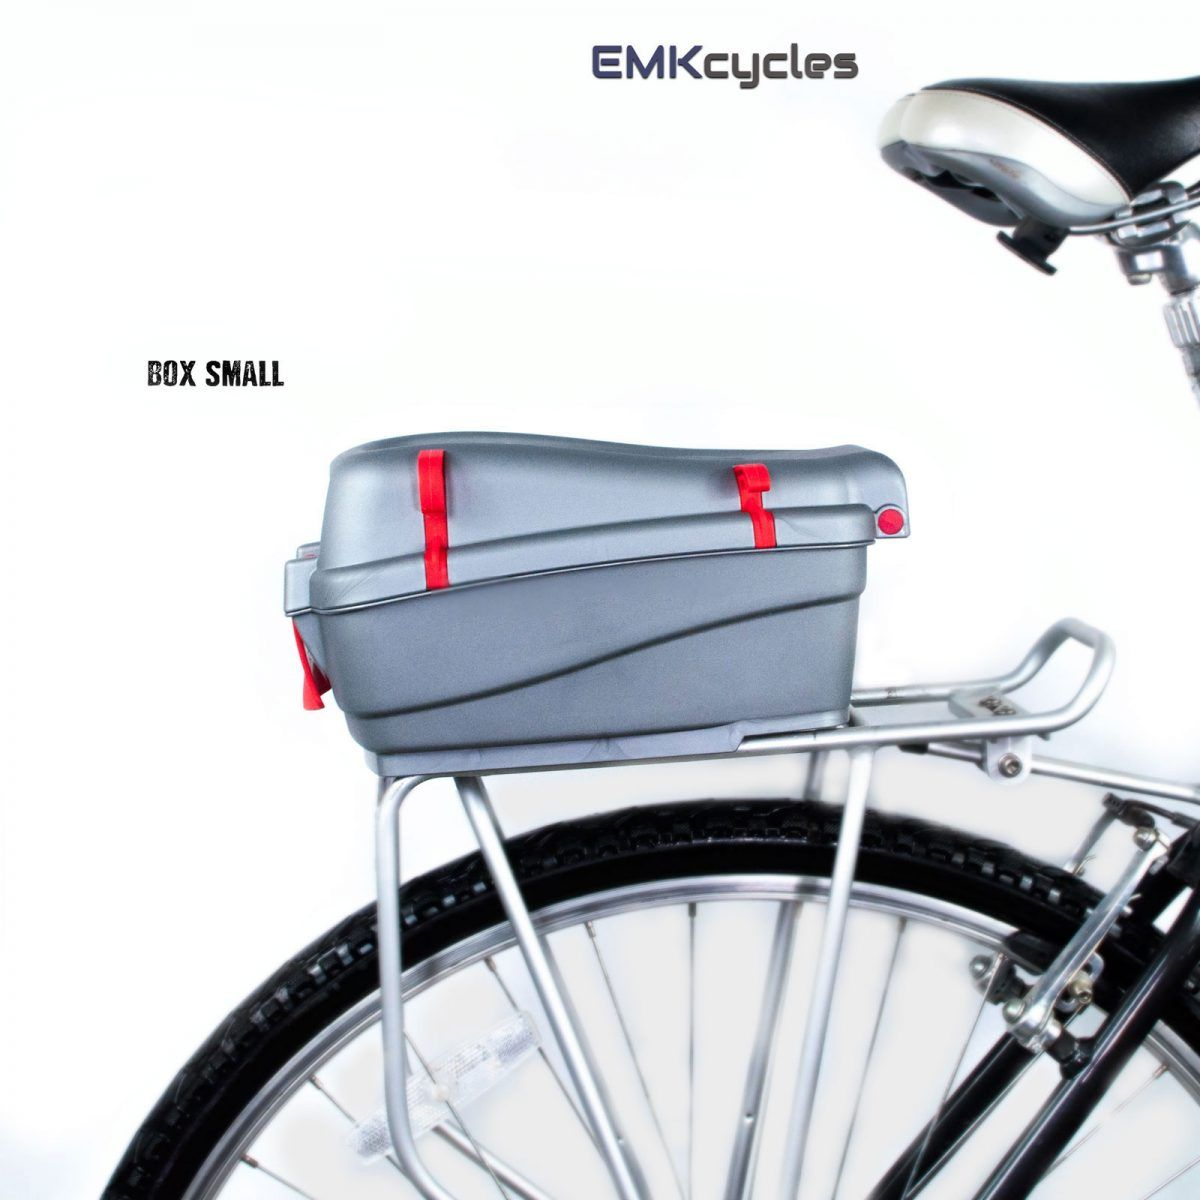 Top Case Bicycle Cargo Box Small Bicycle, Car racks